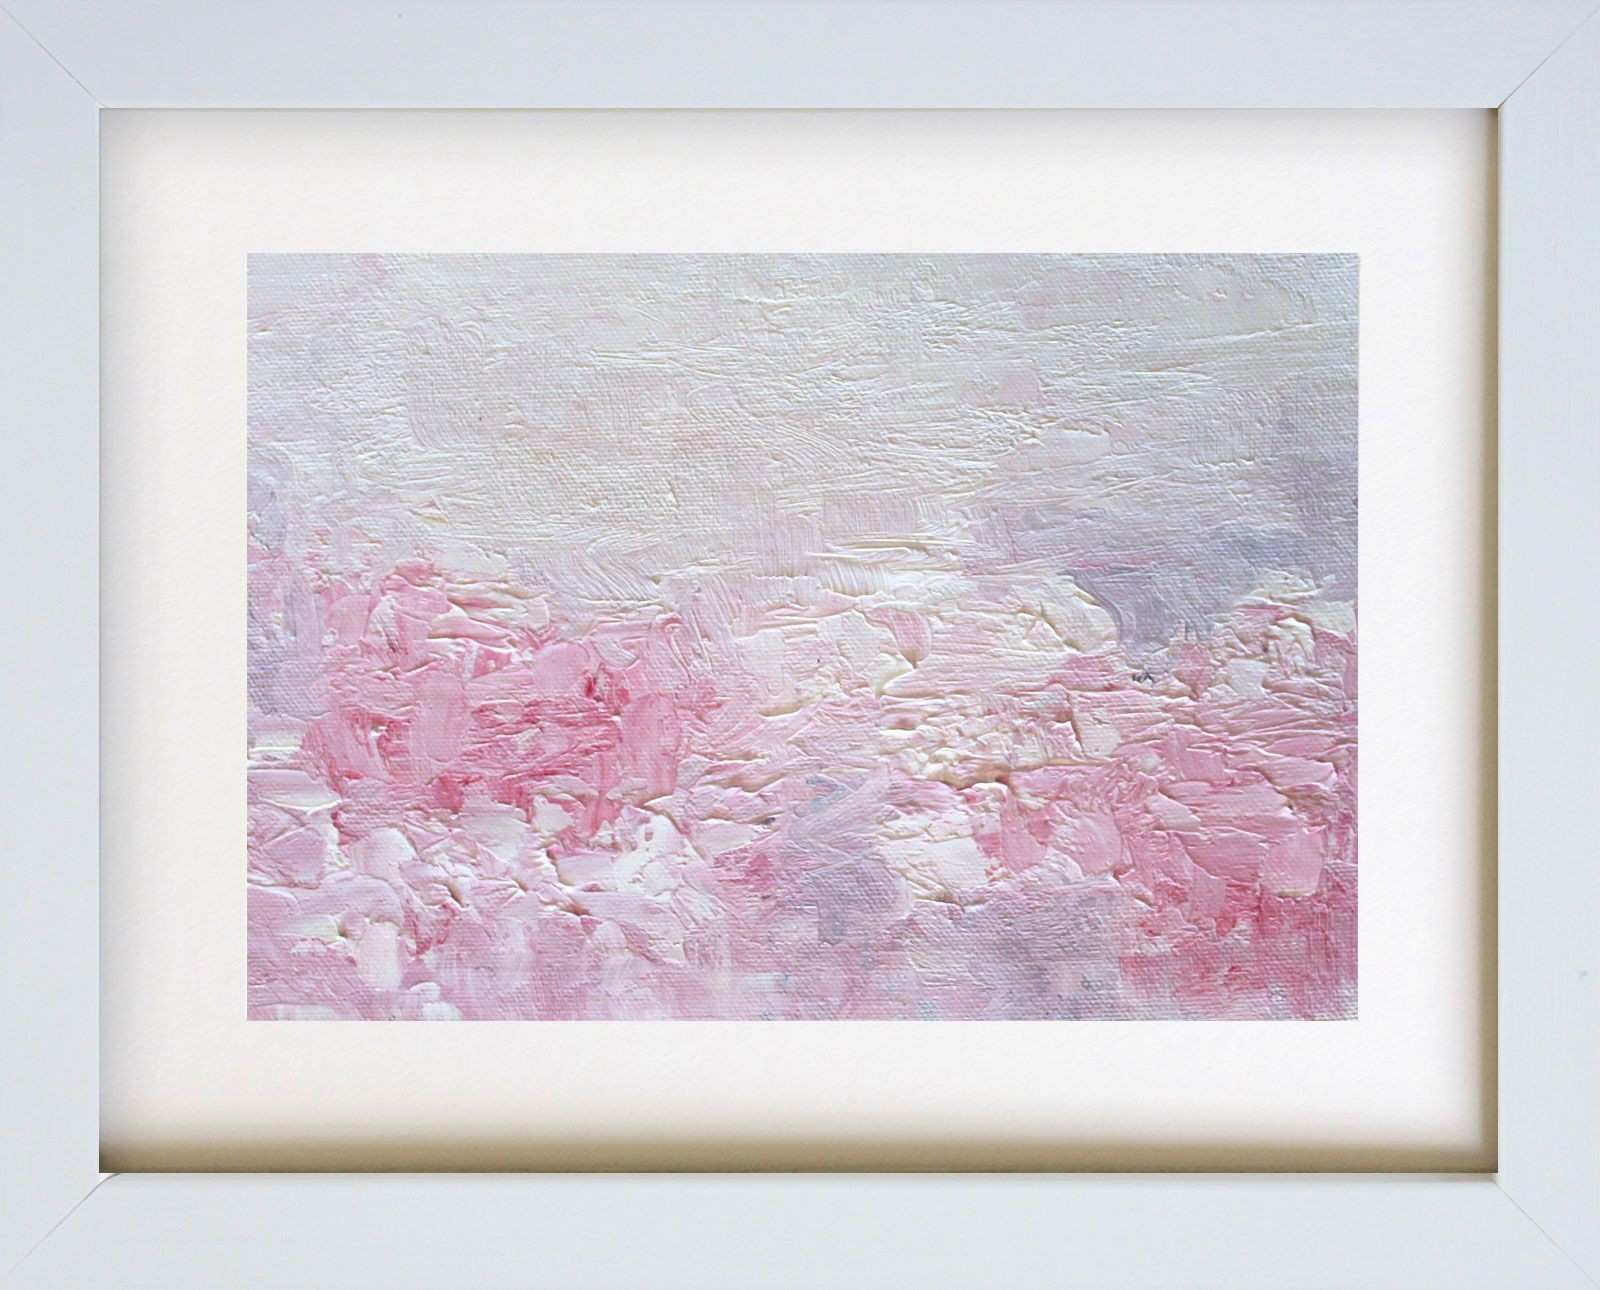 Buy Original Abstract Art Modern Landscape Paintings For Sale